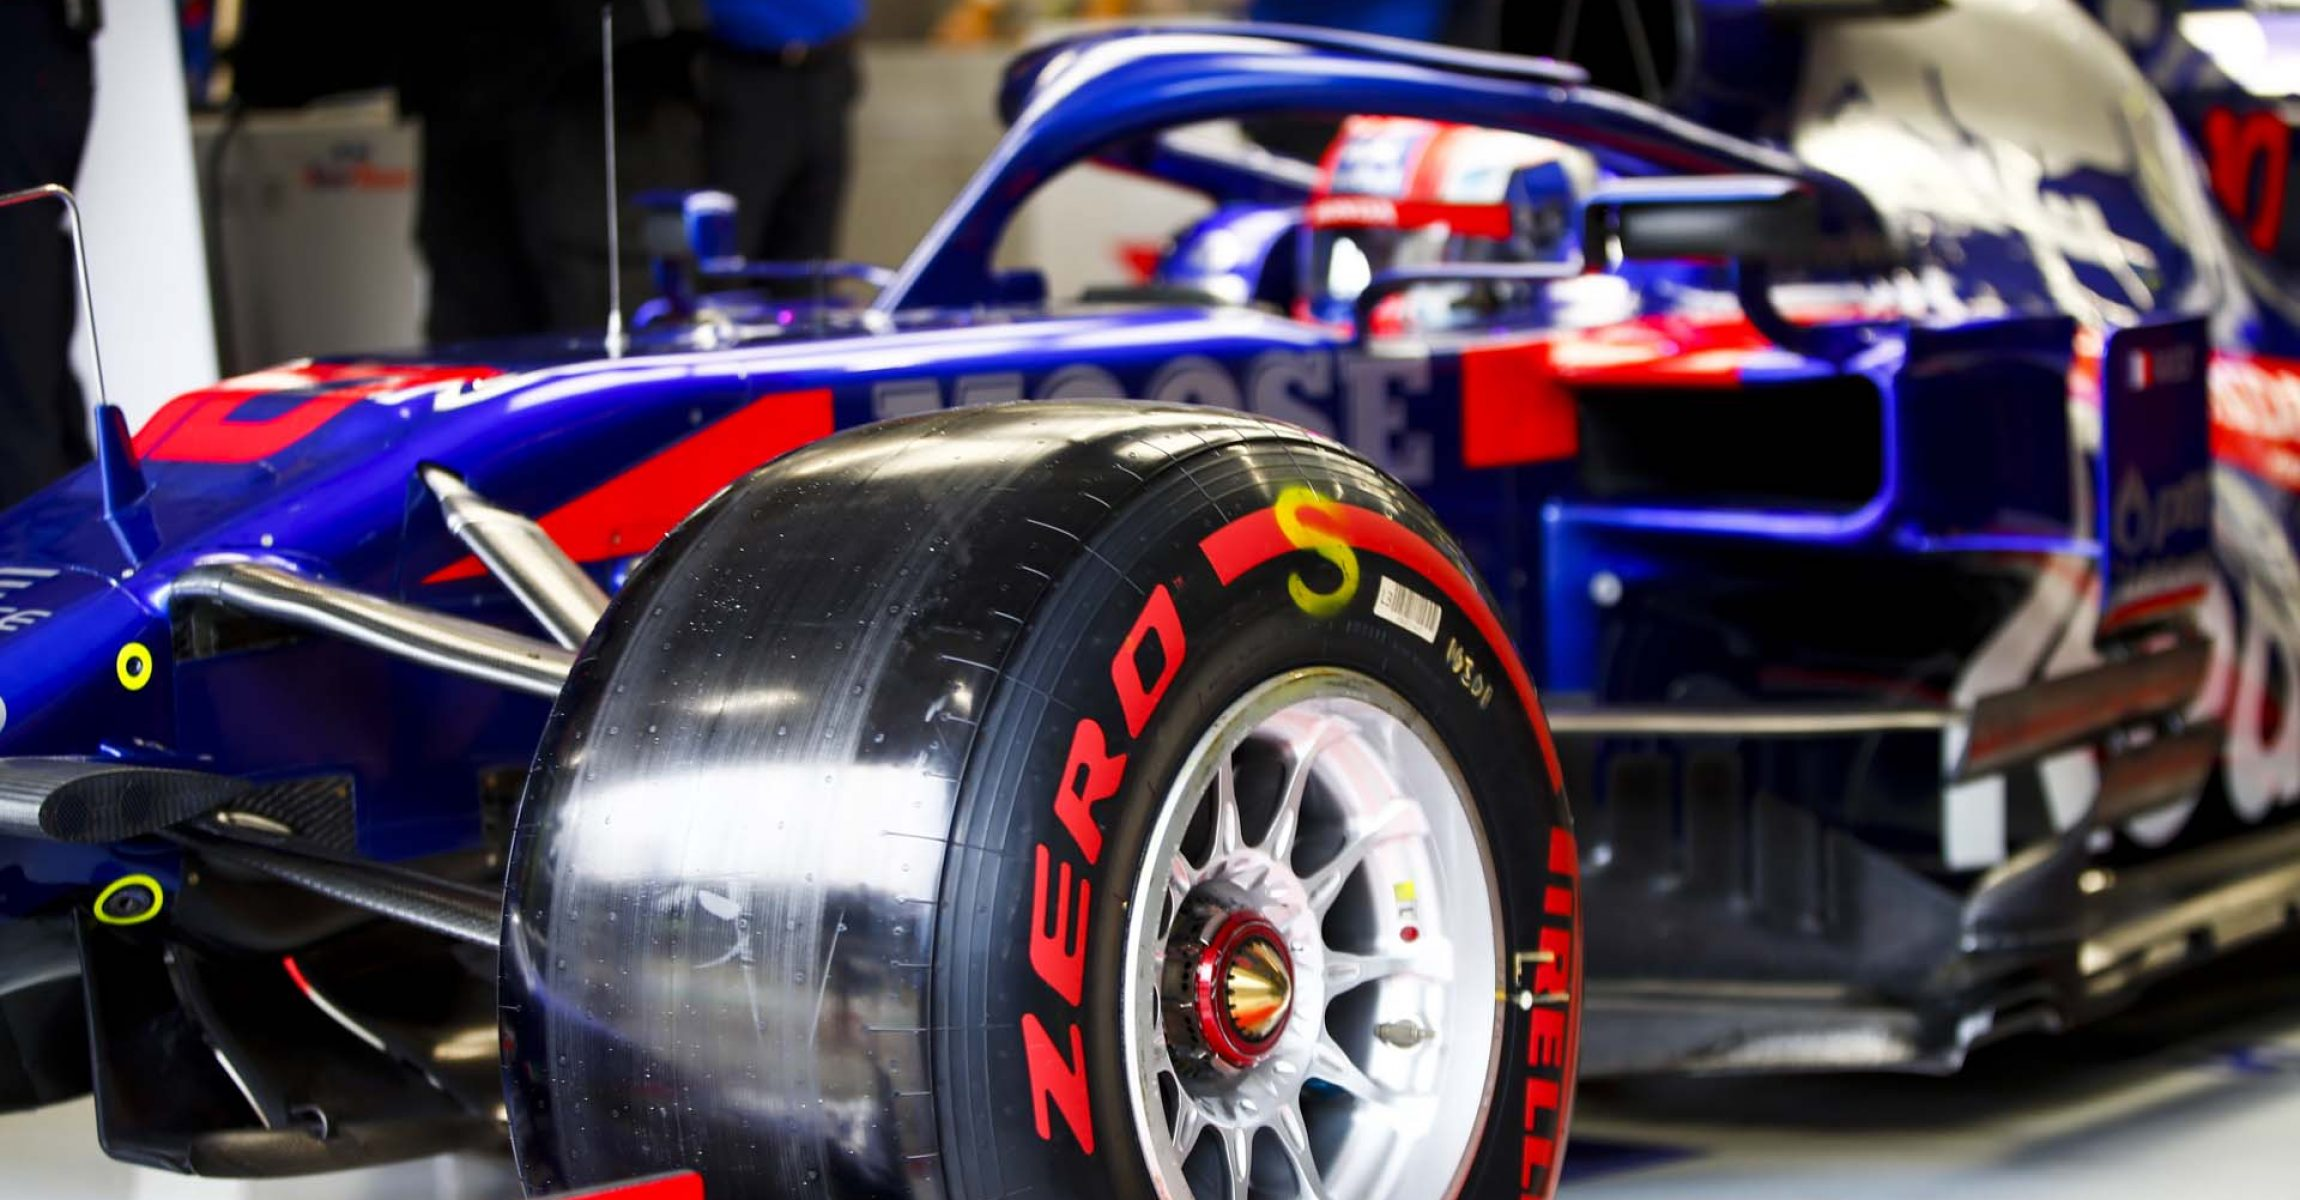 SAO PAULO, BRAZIL - NOVEMBER 15: Pierre Gasly, Toro Rosso STR14 driving out of the garage during the 2019 Formula One Brazilian Grand Prix at Autódromo José Carlos Pace, on November 15, 2019 in Sao Paulo, Brazil. (Photo by Andy Hone / LAT Images)